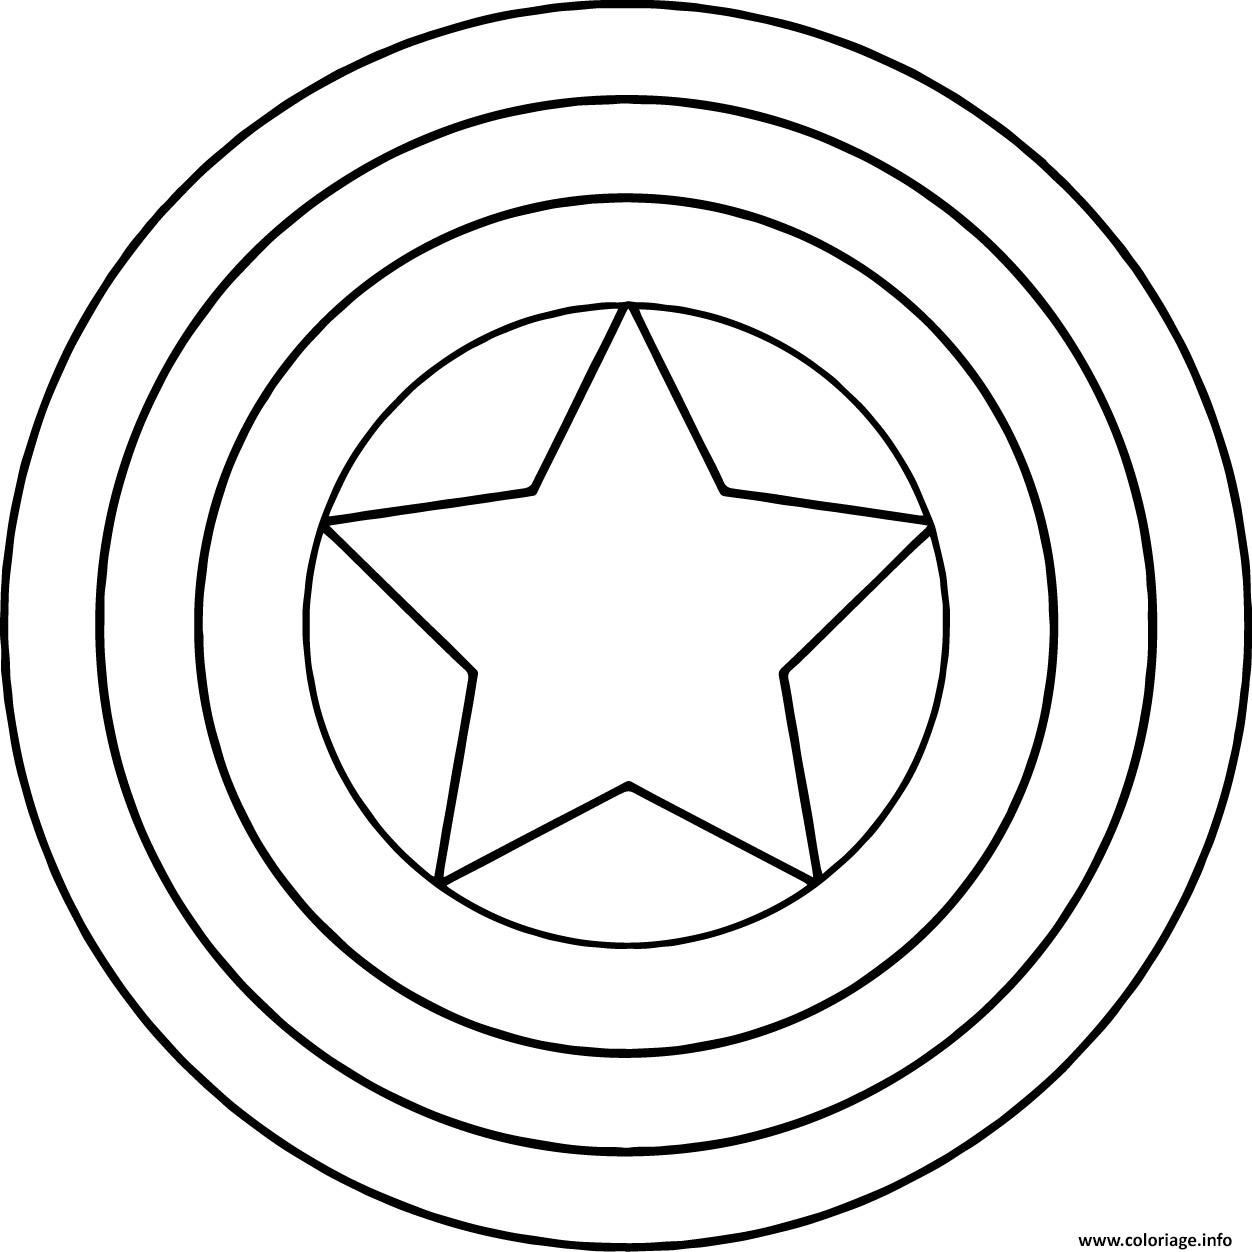 1252x1252 Flash Logo Coloring Pages Acpra